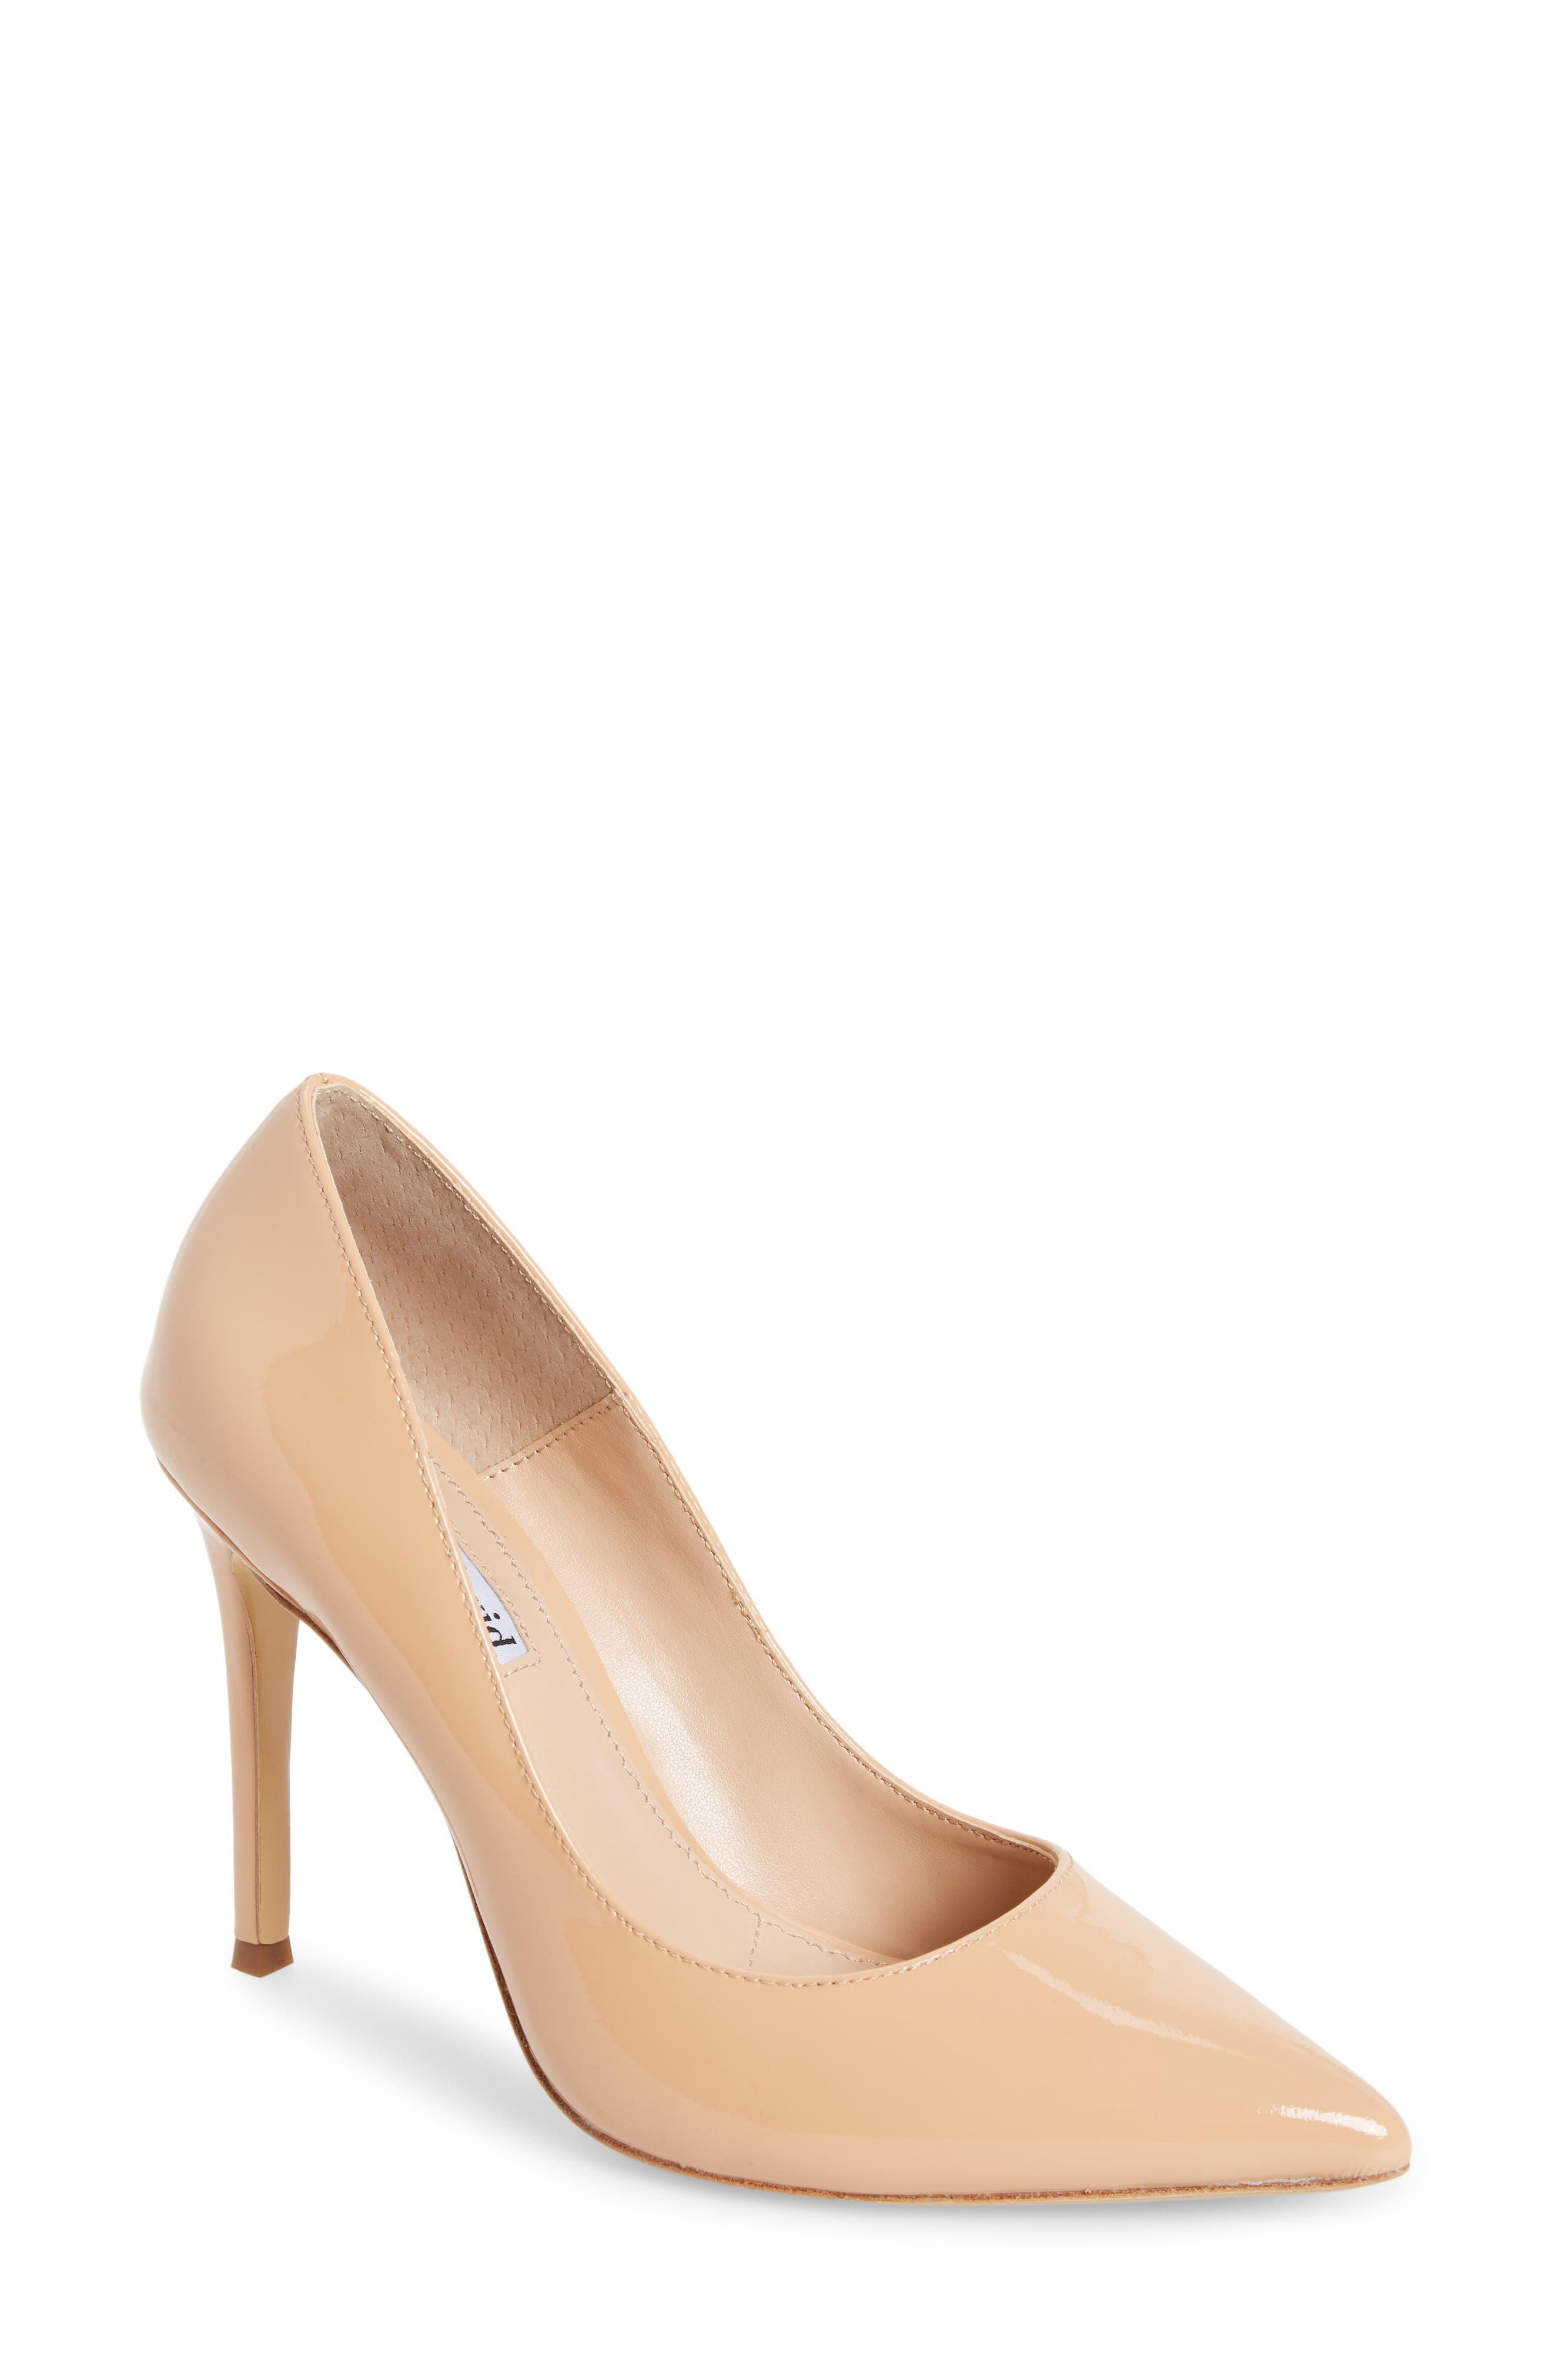 Calessi Pointy Toe Pump,                         Main,                         color, PETAL PATENT LEATHER